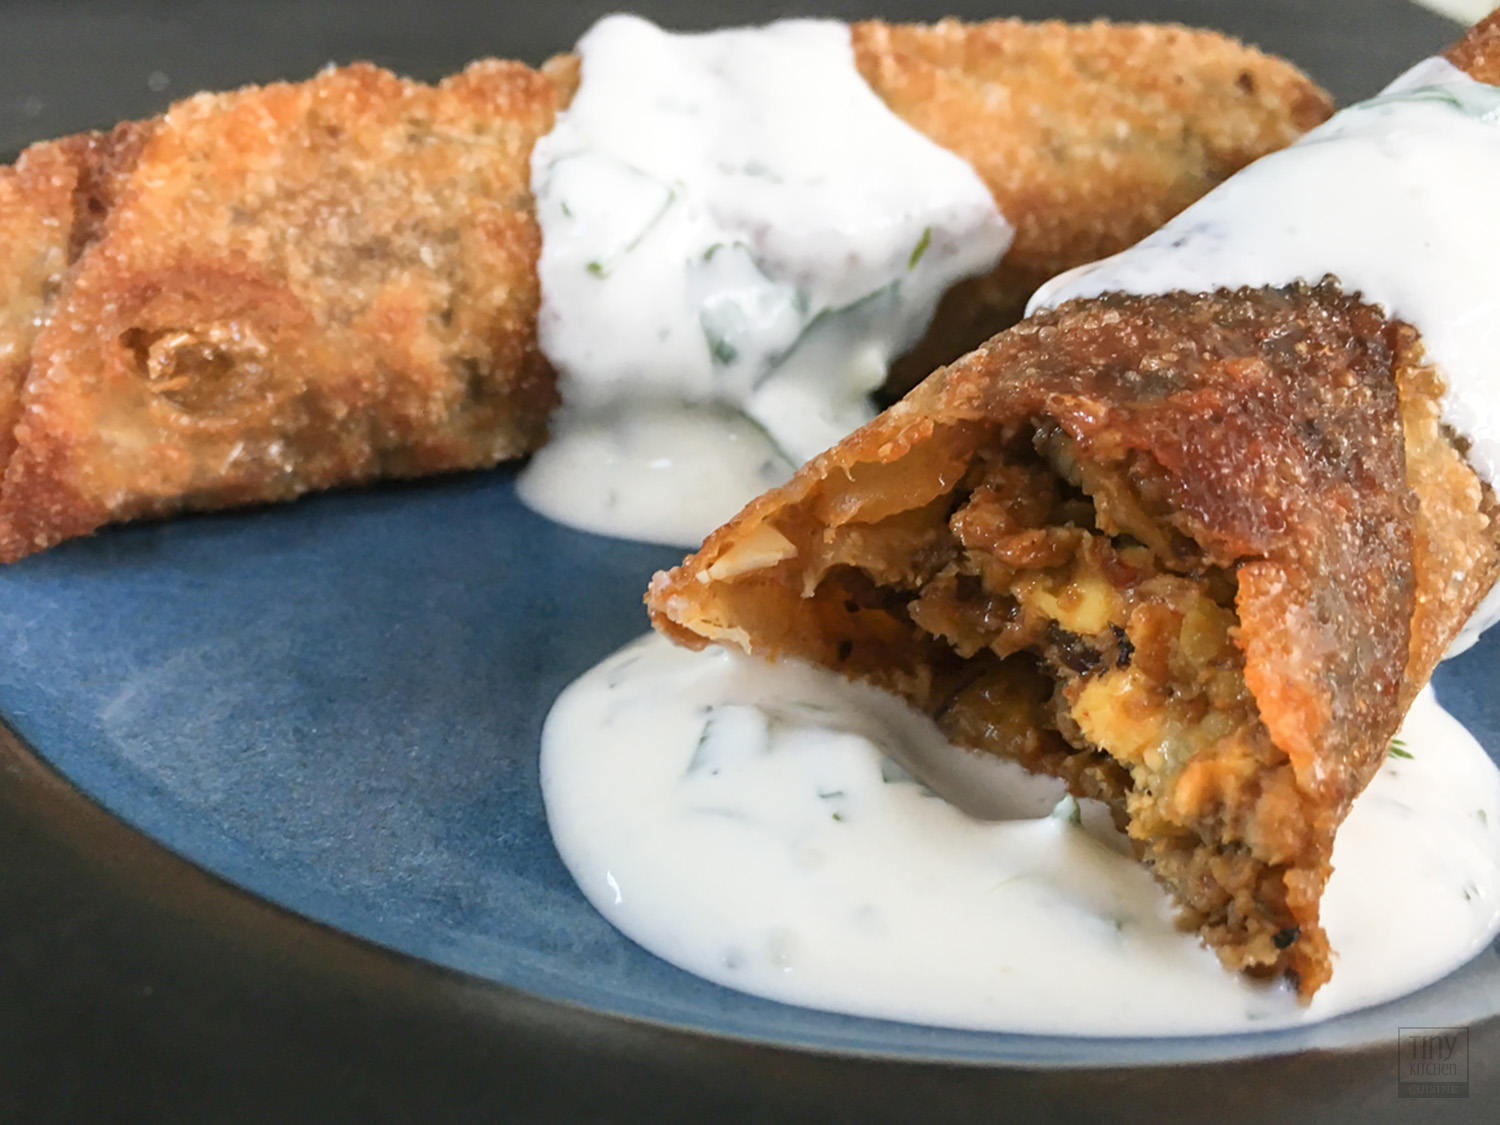 Want an easy method for how to make empanadas? This recipe for vegetarian empanads uses the flavors of a traditional beef and chorizo empanada with an untraditional twist! | Tiny Kitchen Cuisine | http://tiny.kitchen